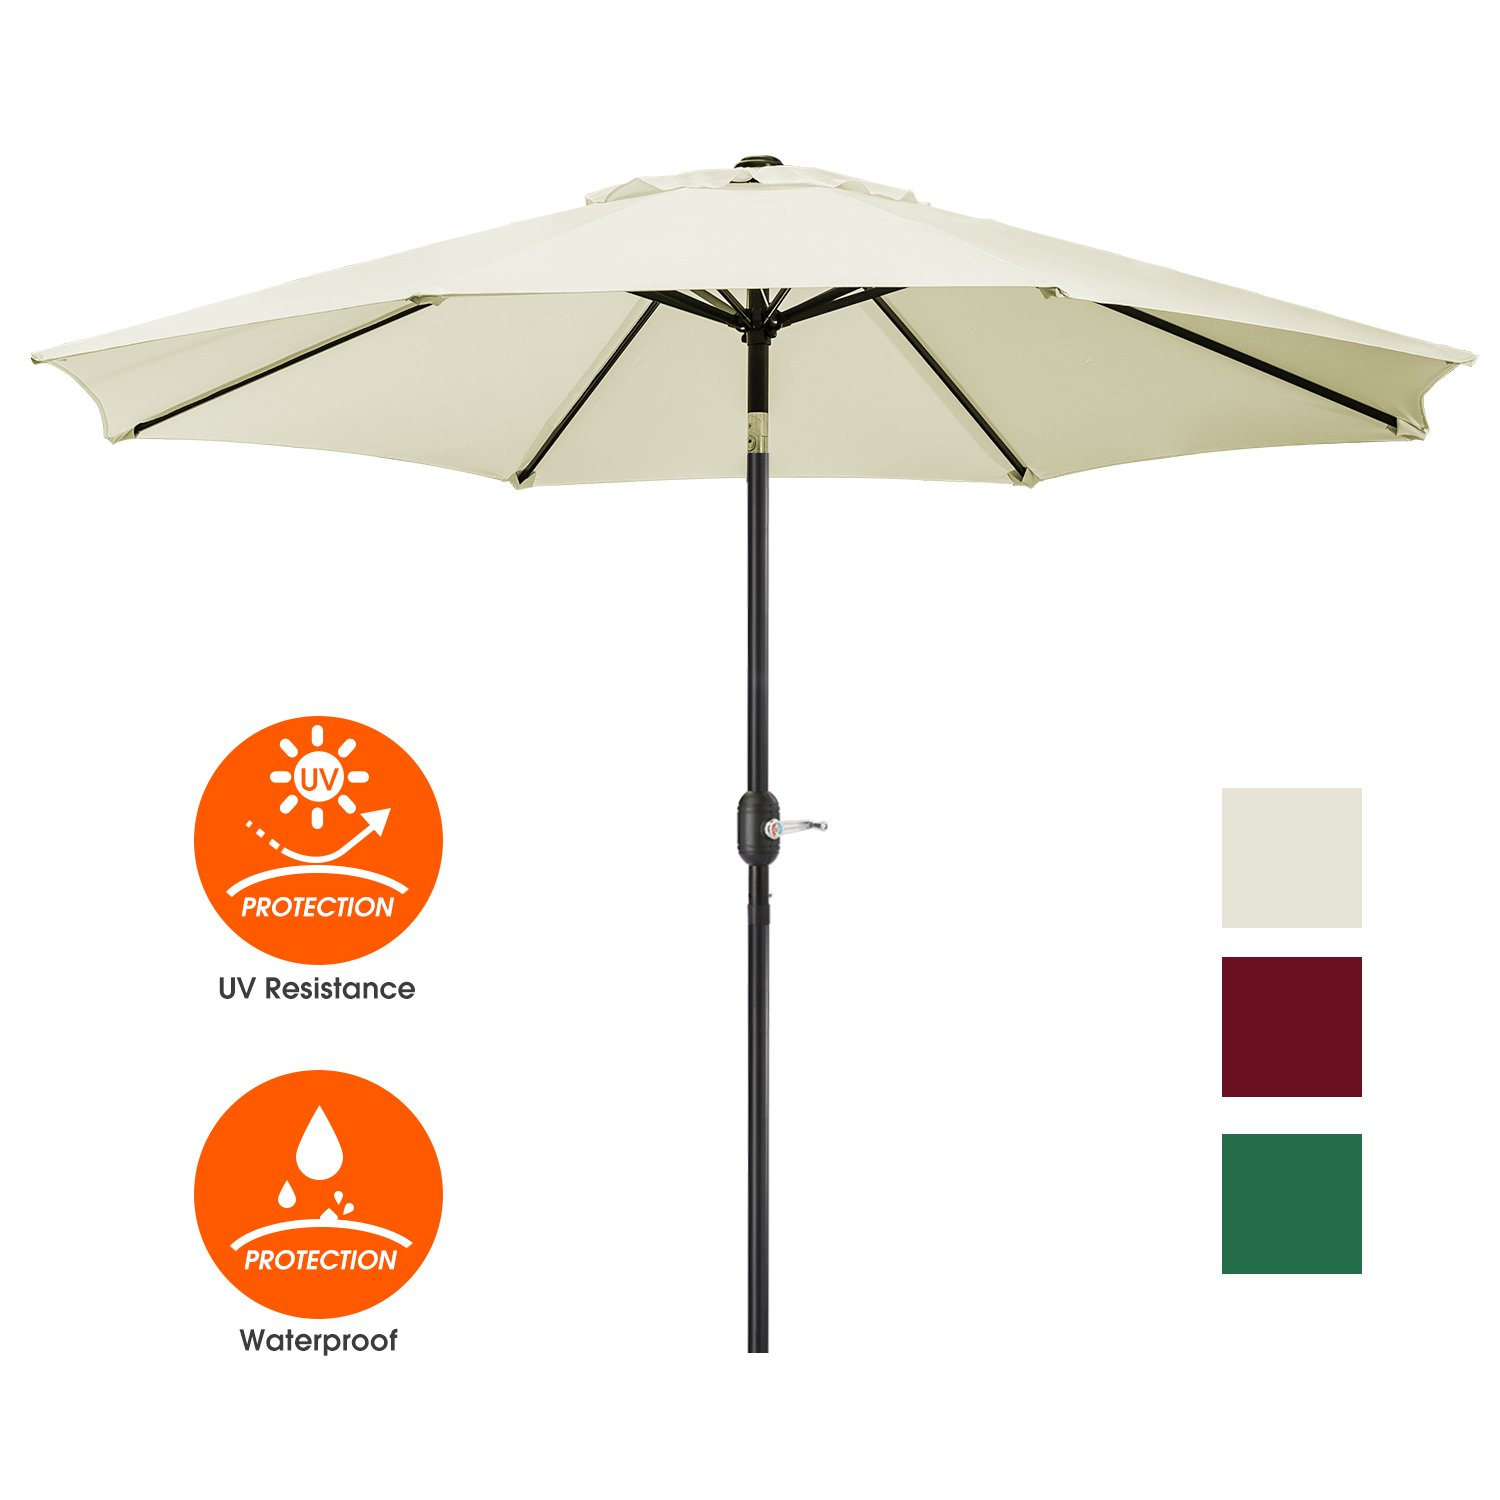 The Best Patio Umbrellas For Your Garden Or Backyard: Reviews & Buying Guide 18